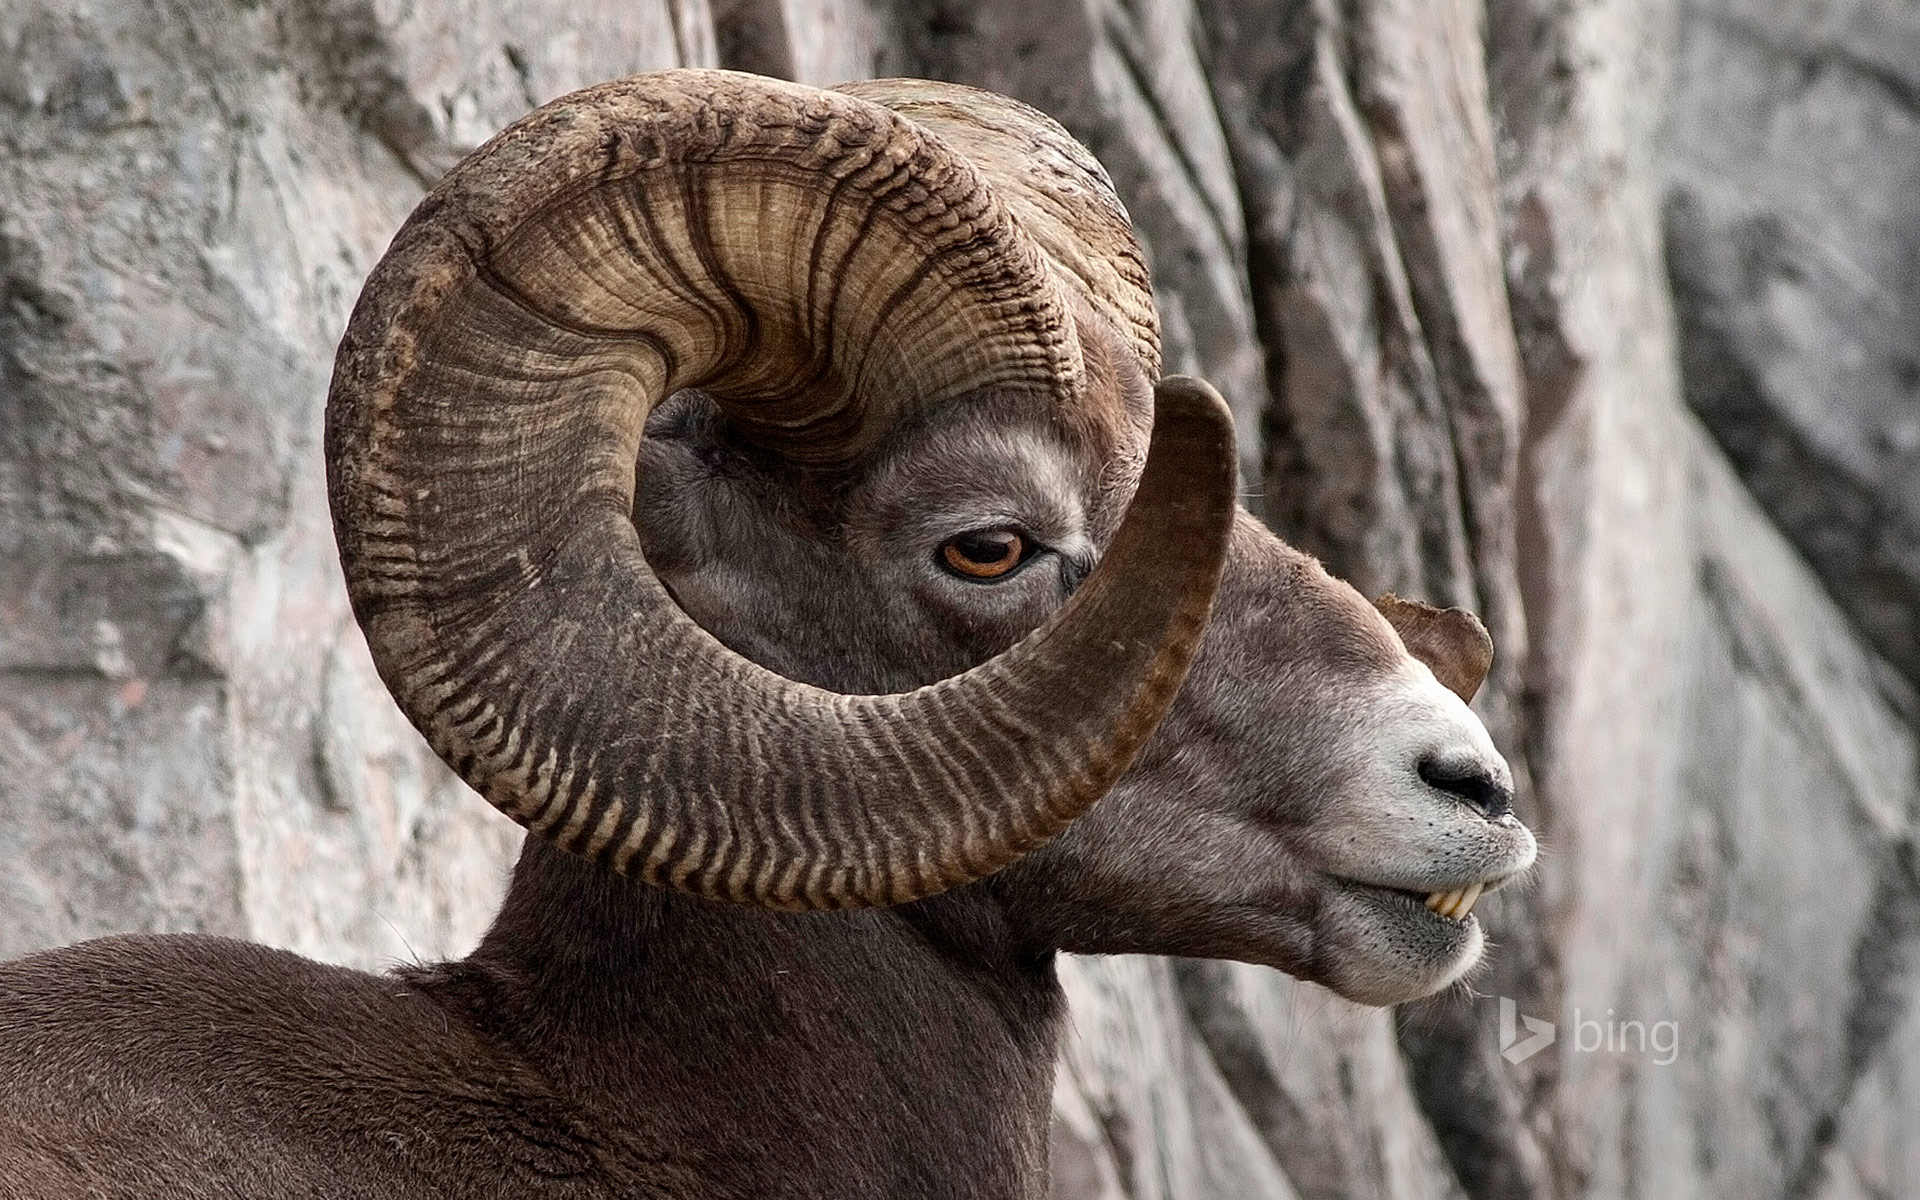 Rocky Mountain bighorn sheep in Kananaskis Country, Alberta, Canada